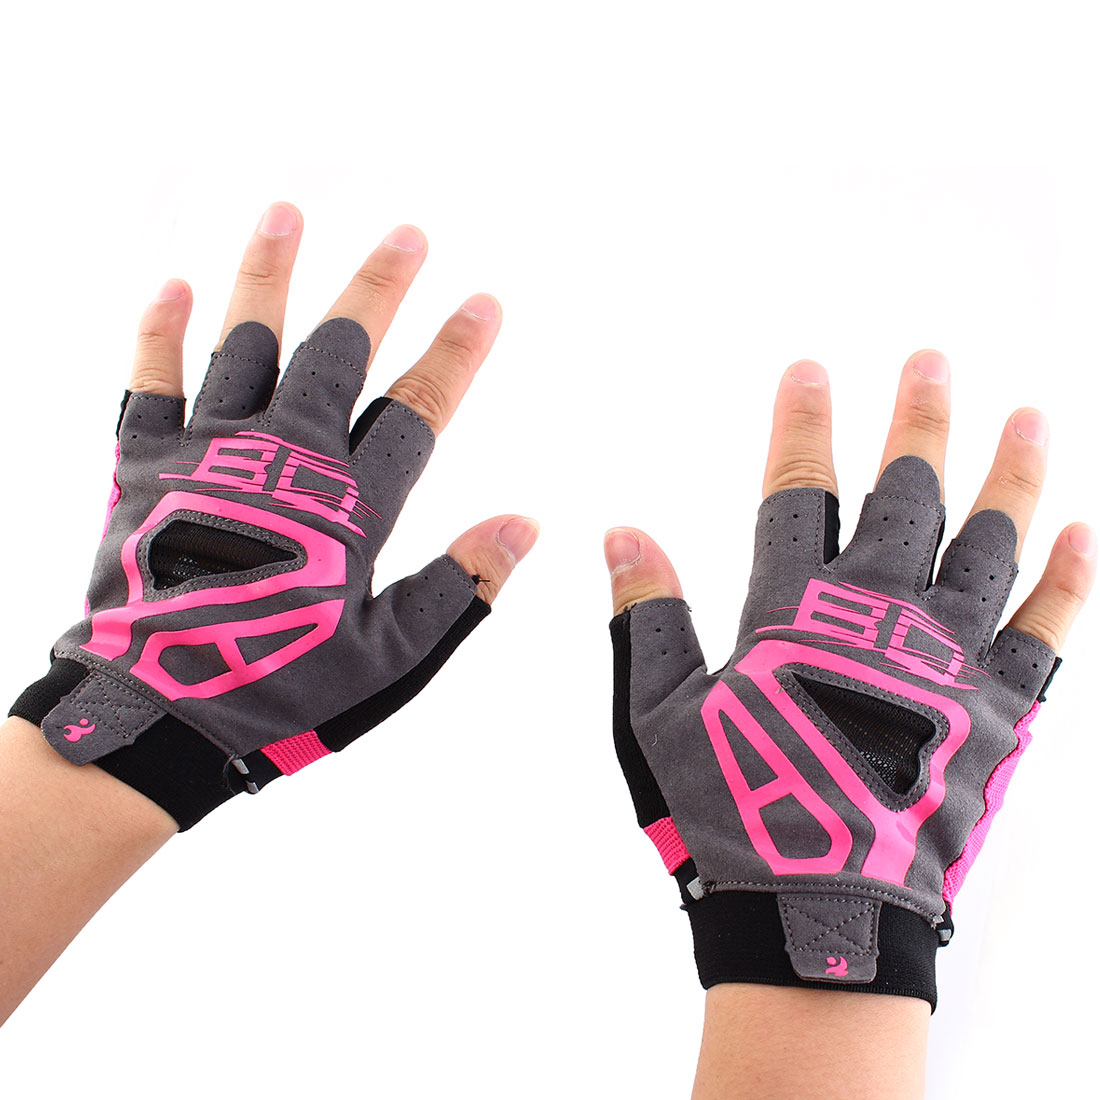 Boodun Authorized Outdoor Cycling Gym Workout Training Yoga Weight Lifting Half Finger Gloves Fuchsia Size L Pair